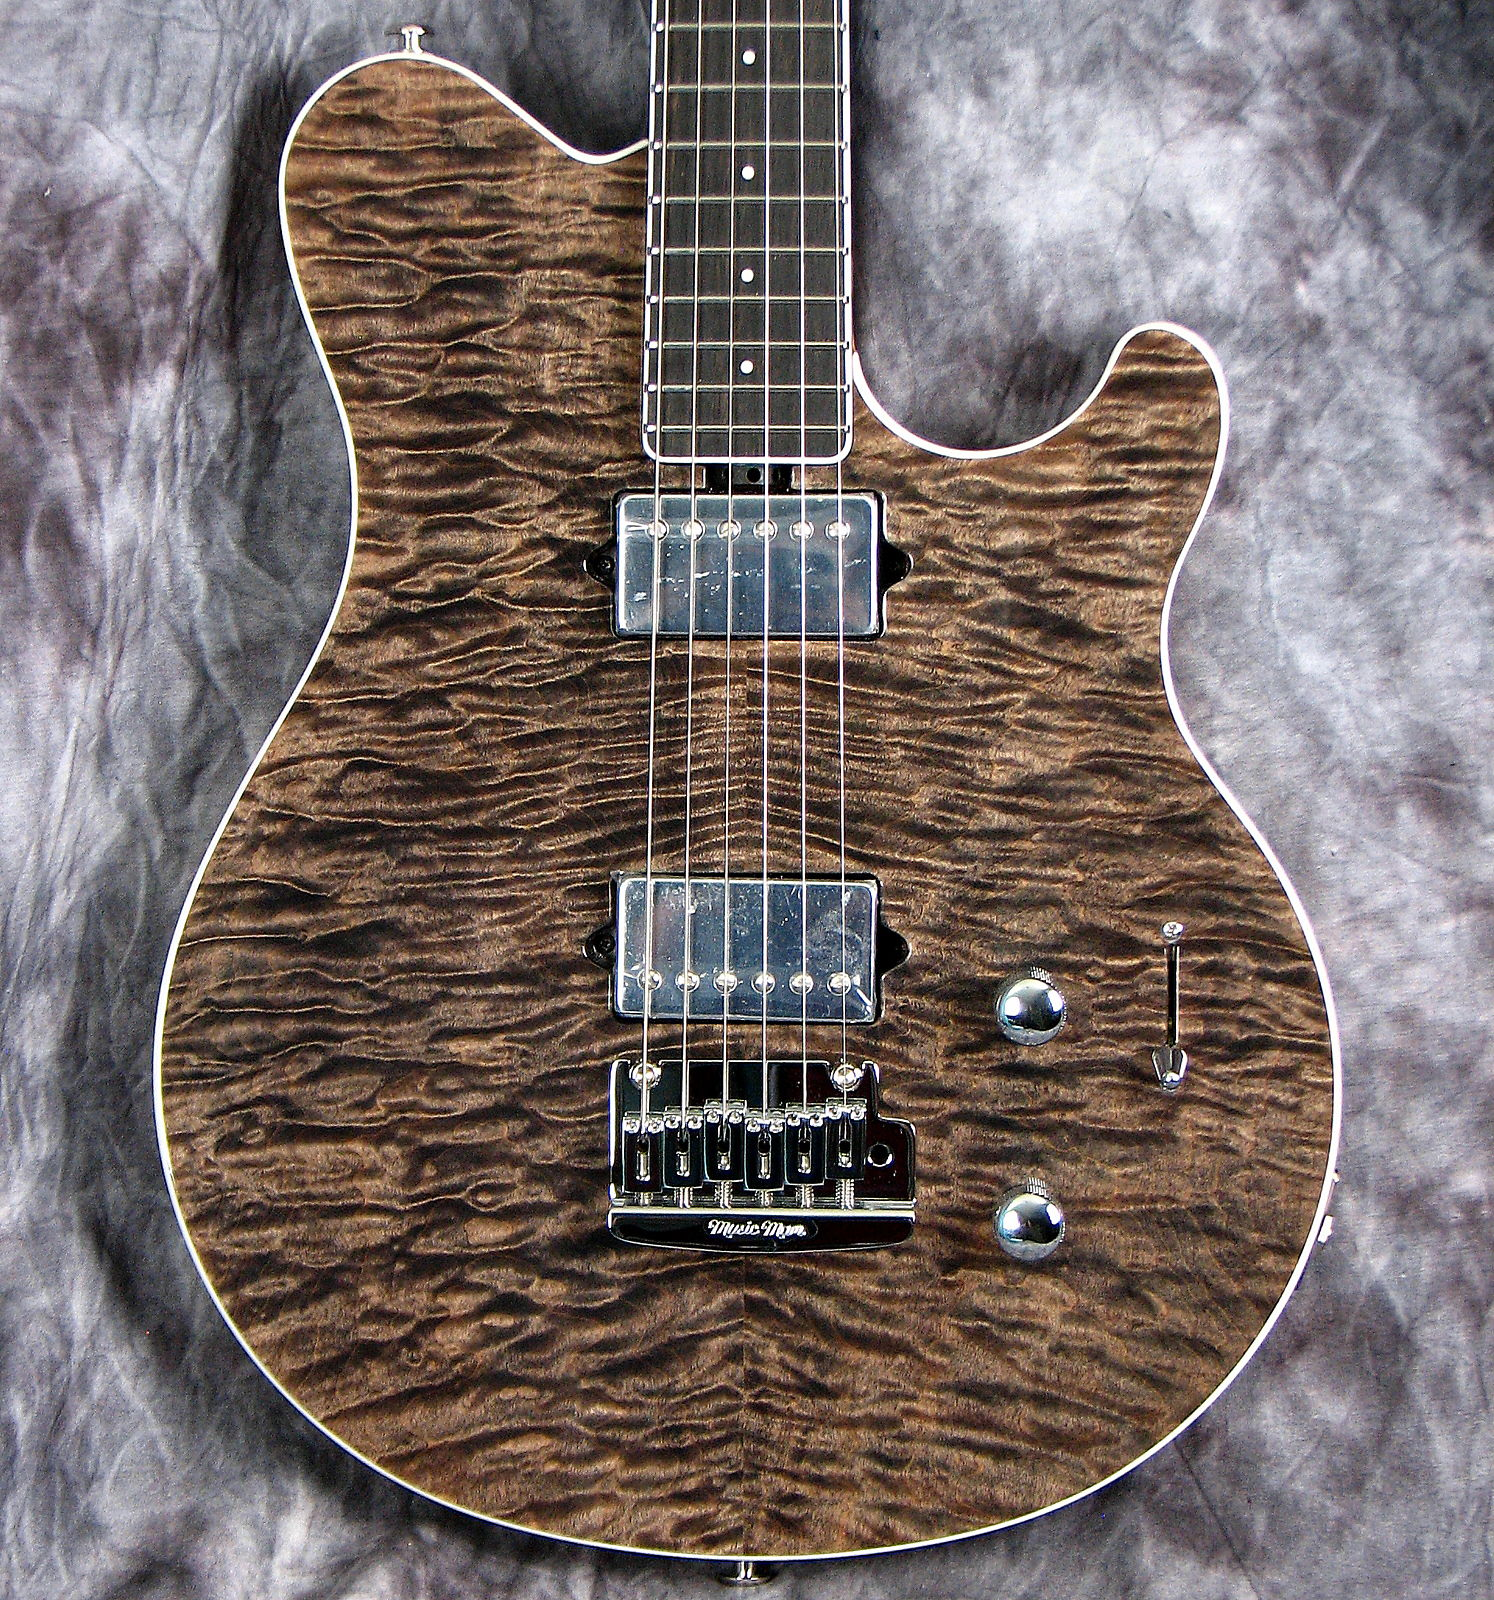 ernie ball music man axis super sport hh bfr trans light reverb. Black Bedroom Furniture Sets. Home Design Ideas